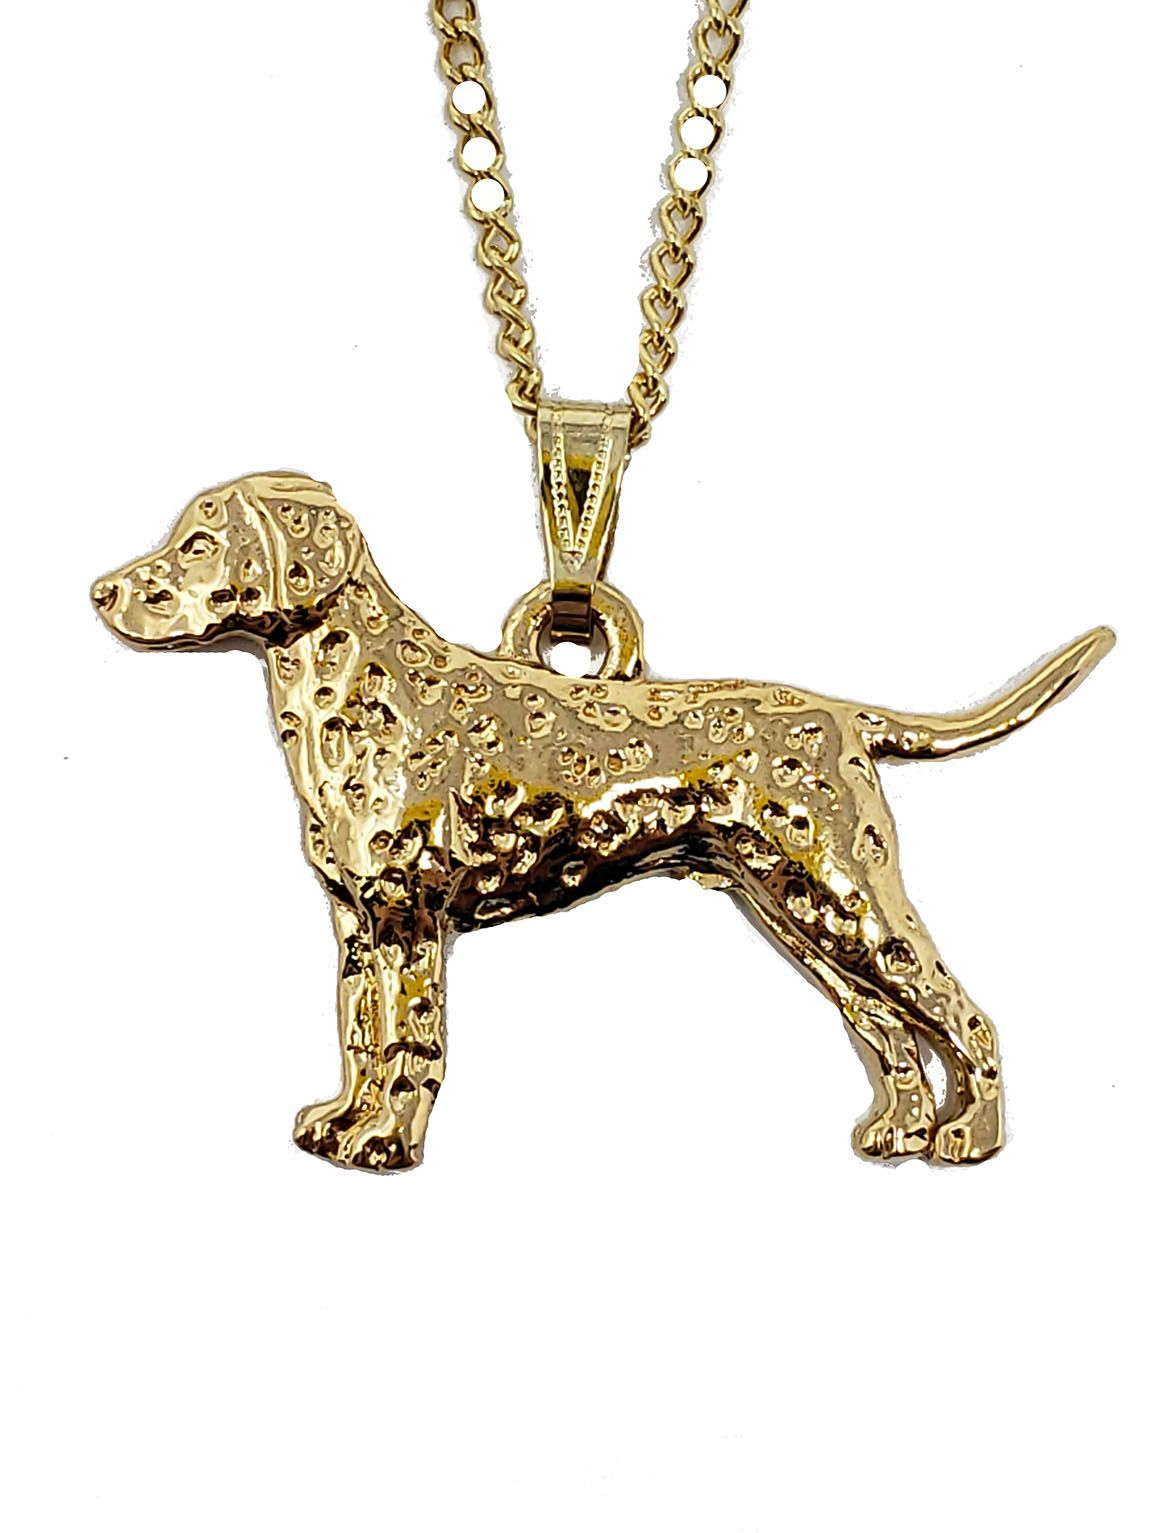 Dalmatian 24K Gold Plated Pendant with Necklace